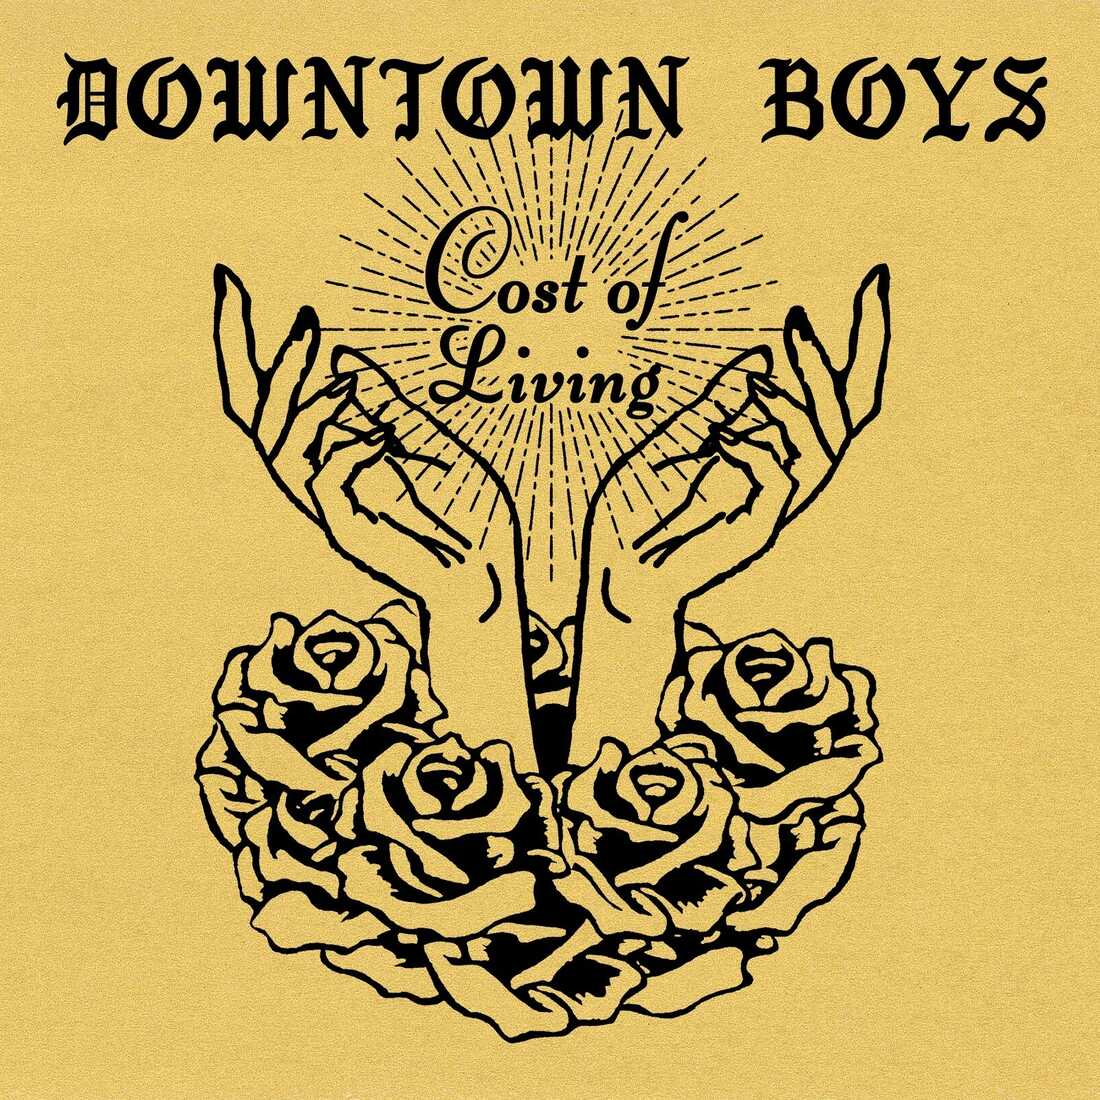 Downtown Boys, Cost Of Living